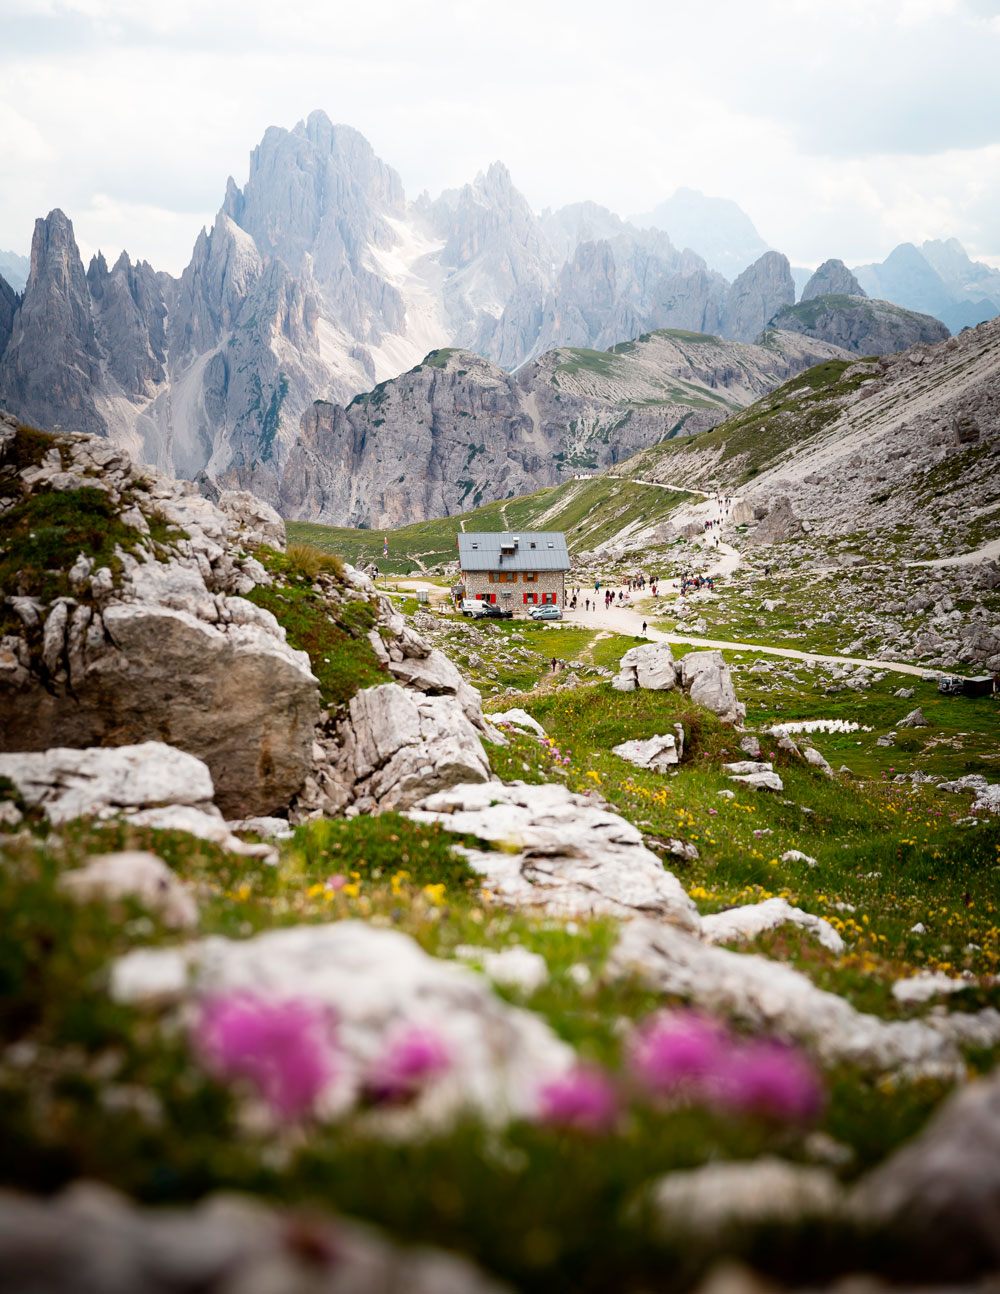 The Dolomites: Hiking around Tre Cime Di Lavaredo